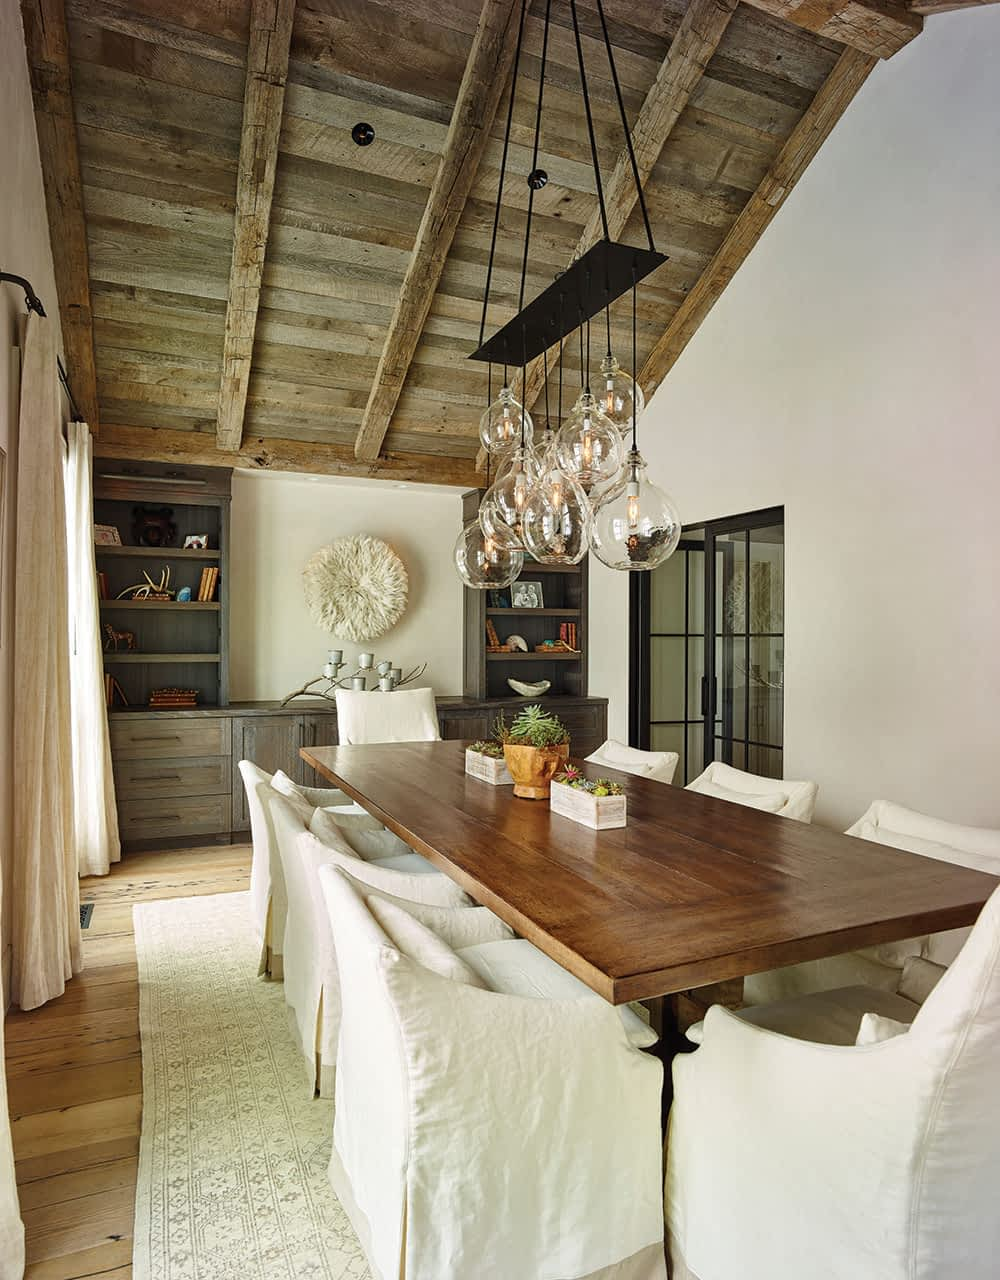 E2 Interior Design appointed the dining room with a white, feathered African JuJu headdress and a custom table built by California-based Laurie Flot. The chandelier—hand-blown glass with a steel canopy—is also custom, from Cisco Lighting.